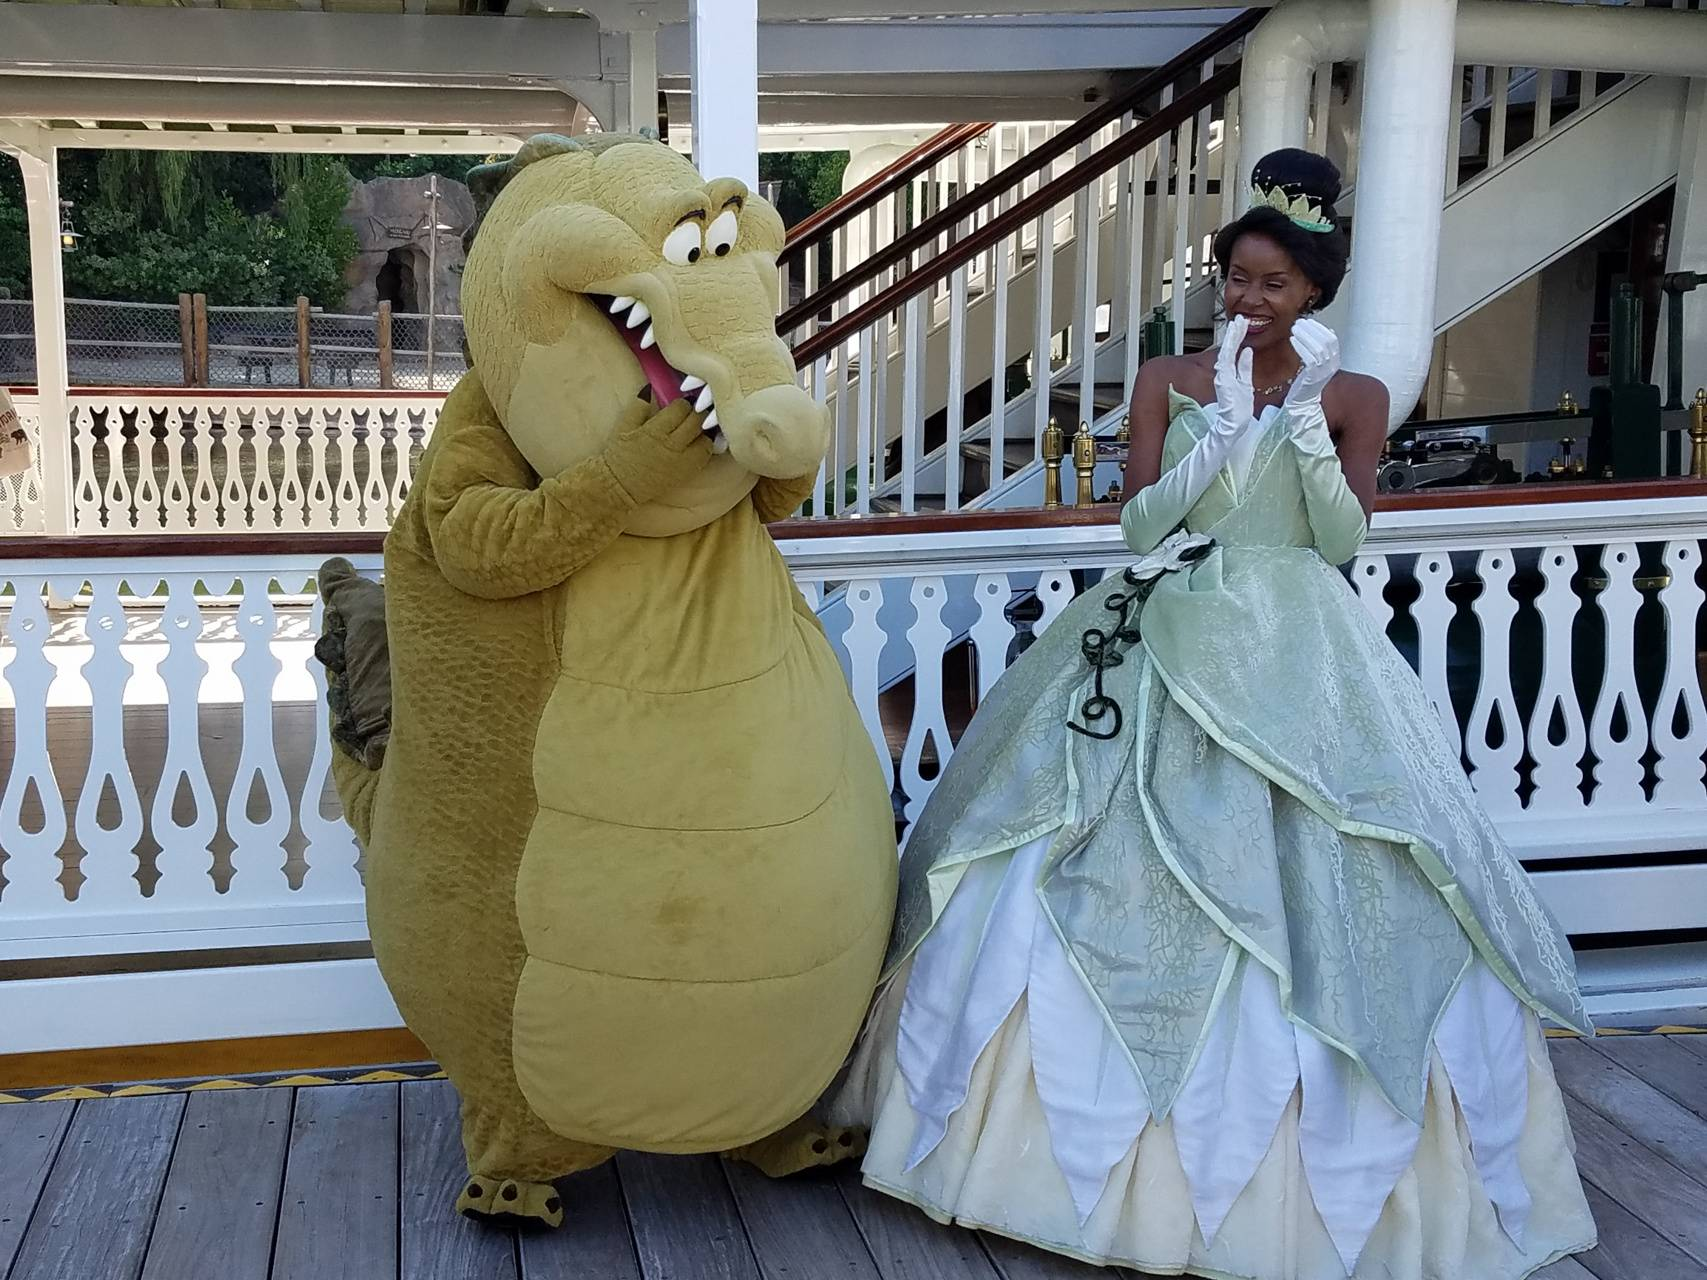 Tiana and Louis